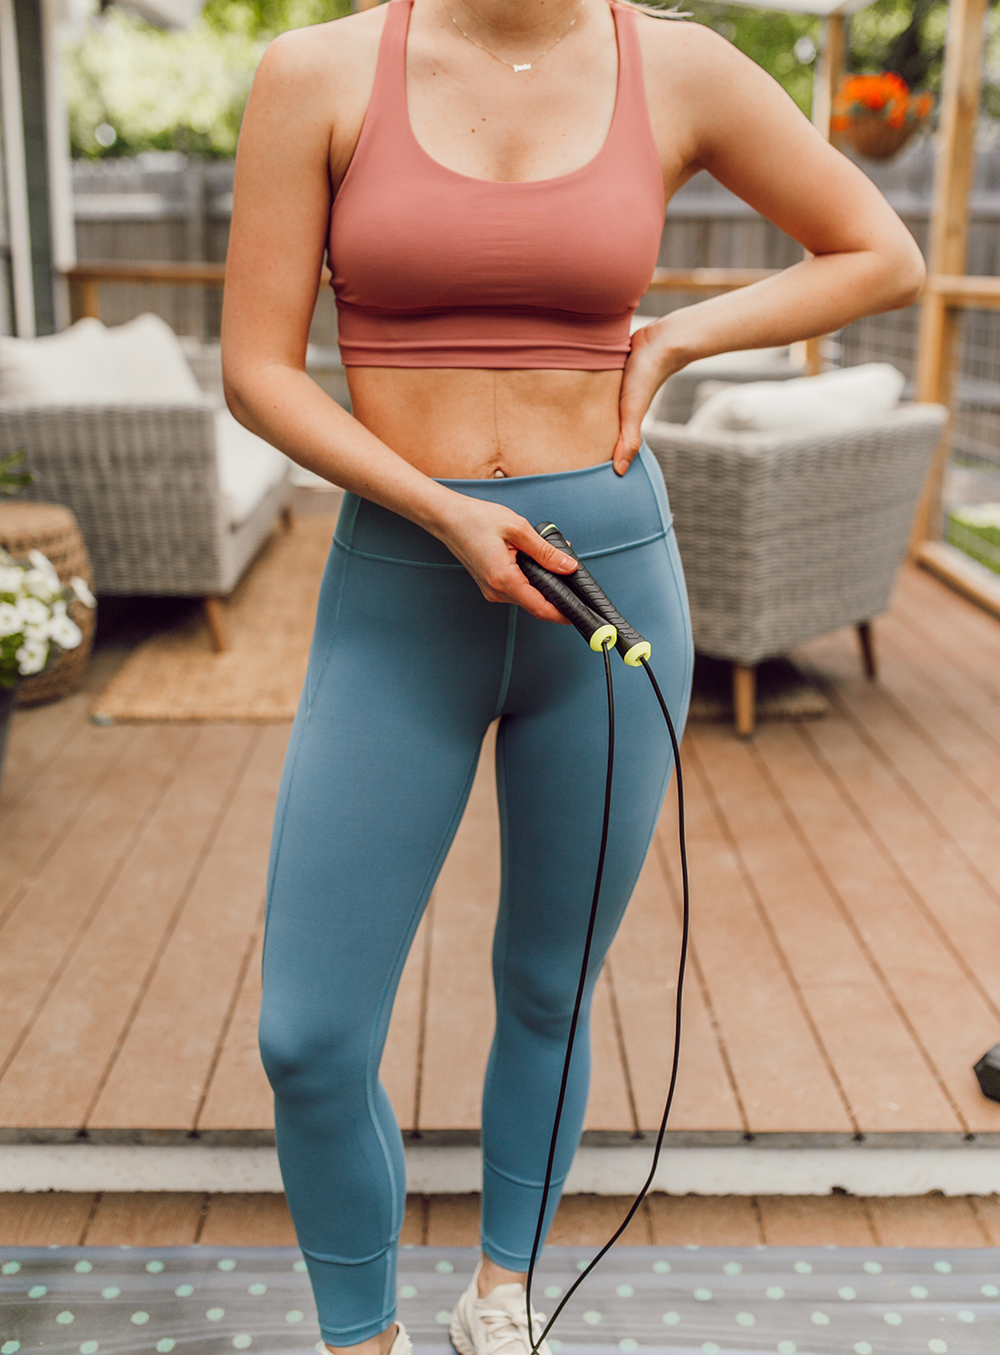 livvyland-blog-olivia-watson-austin-texas-lifestyle-blogger-lululemon-in-movement-leggings-long-lines-energy-bra-postpartum-workout-routine-3